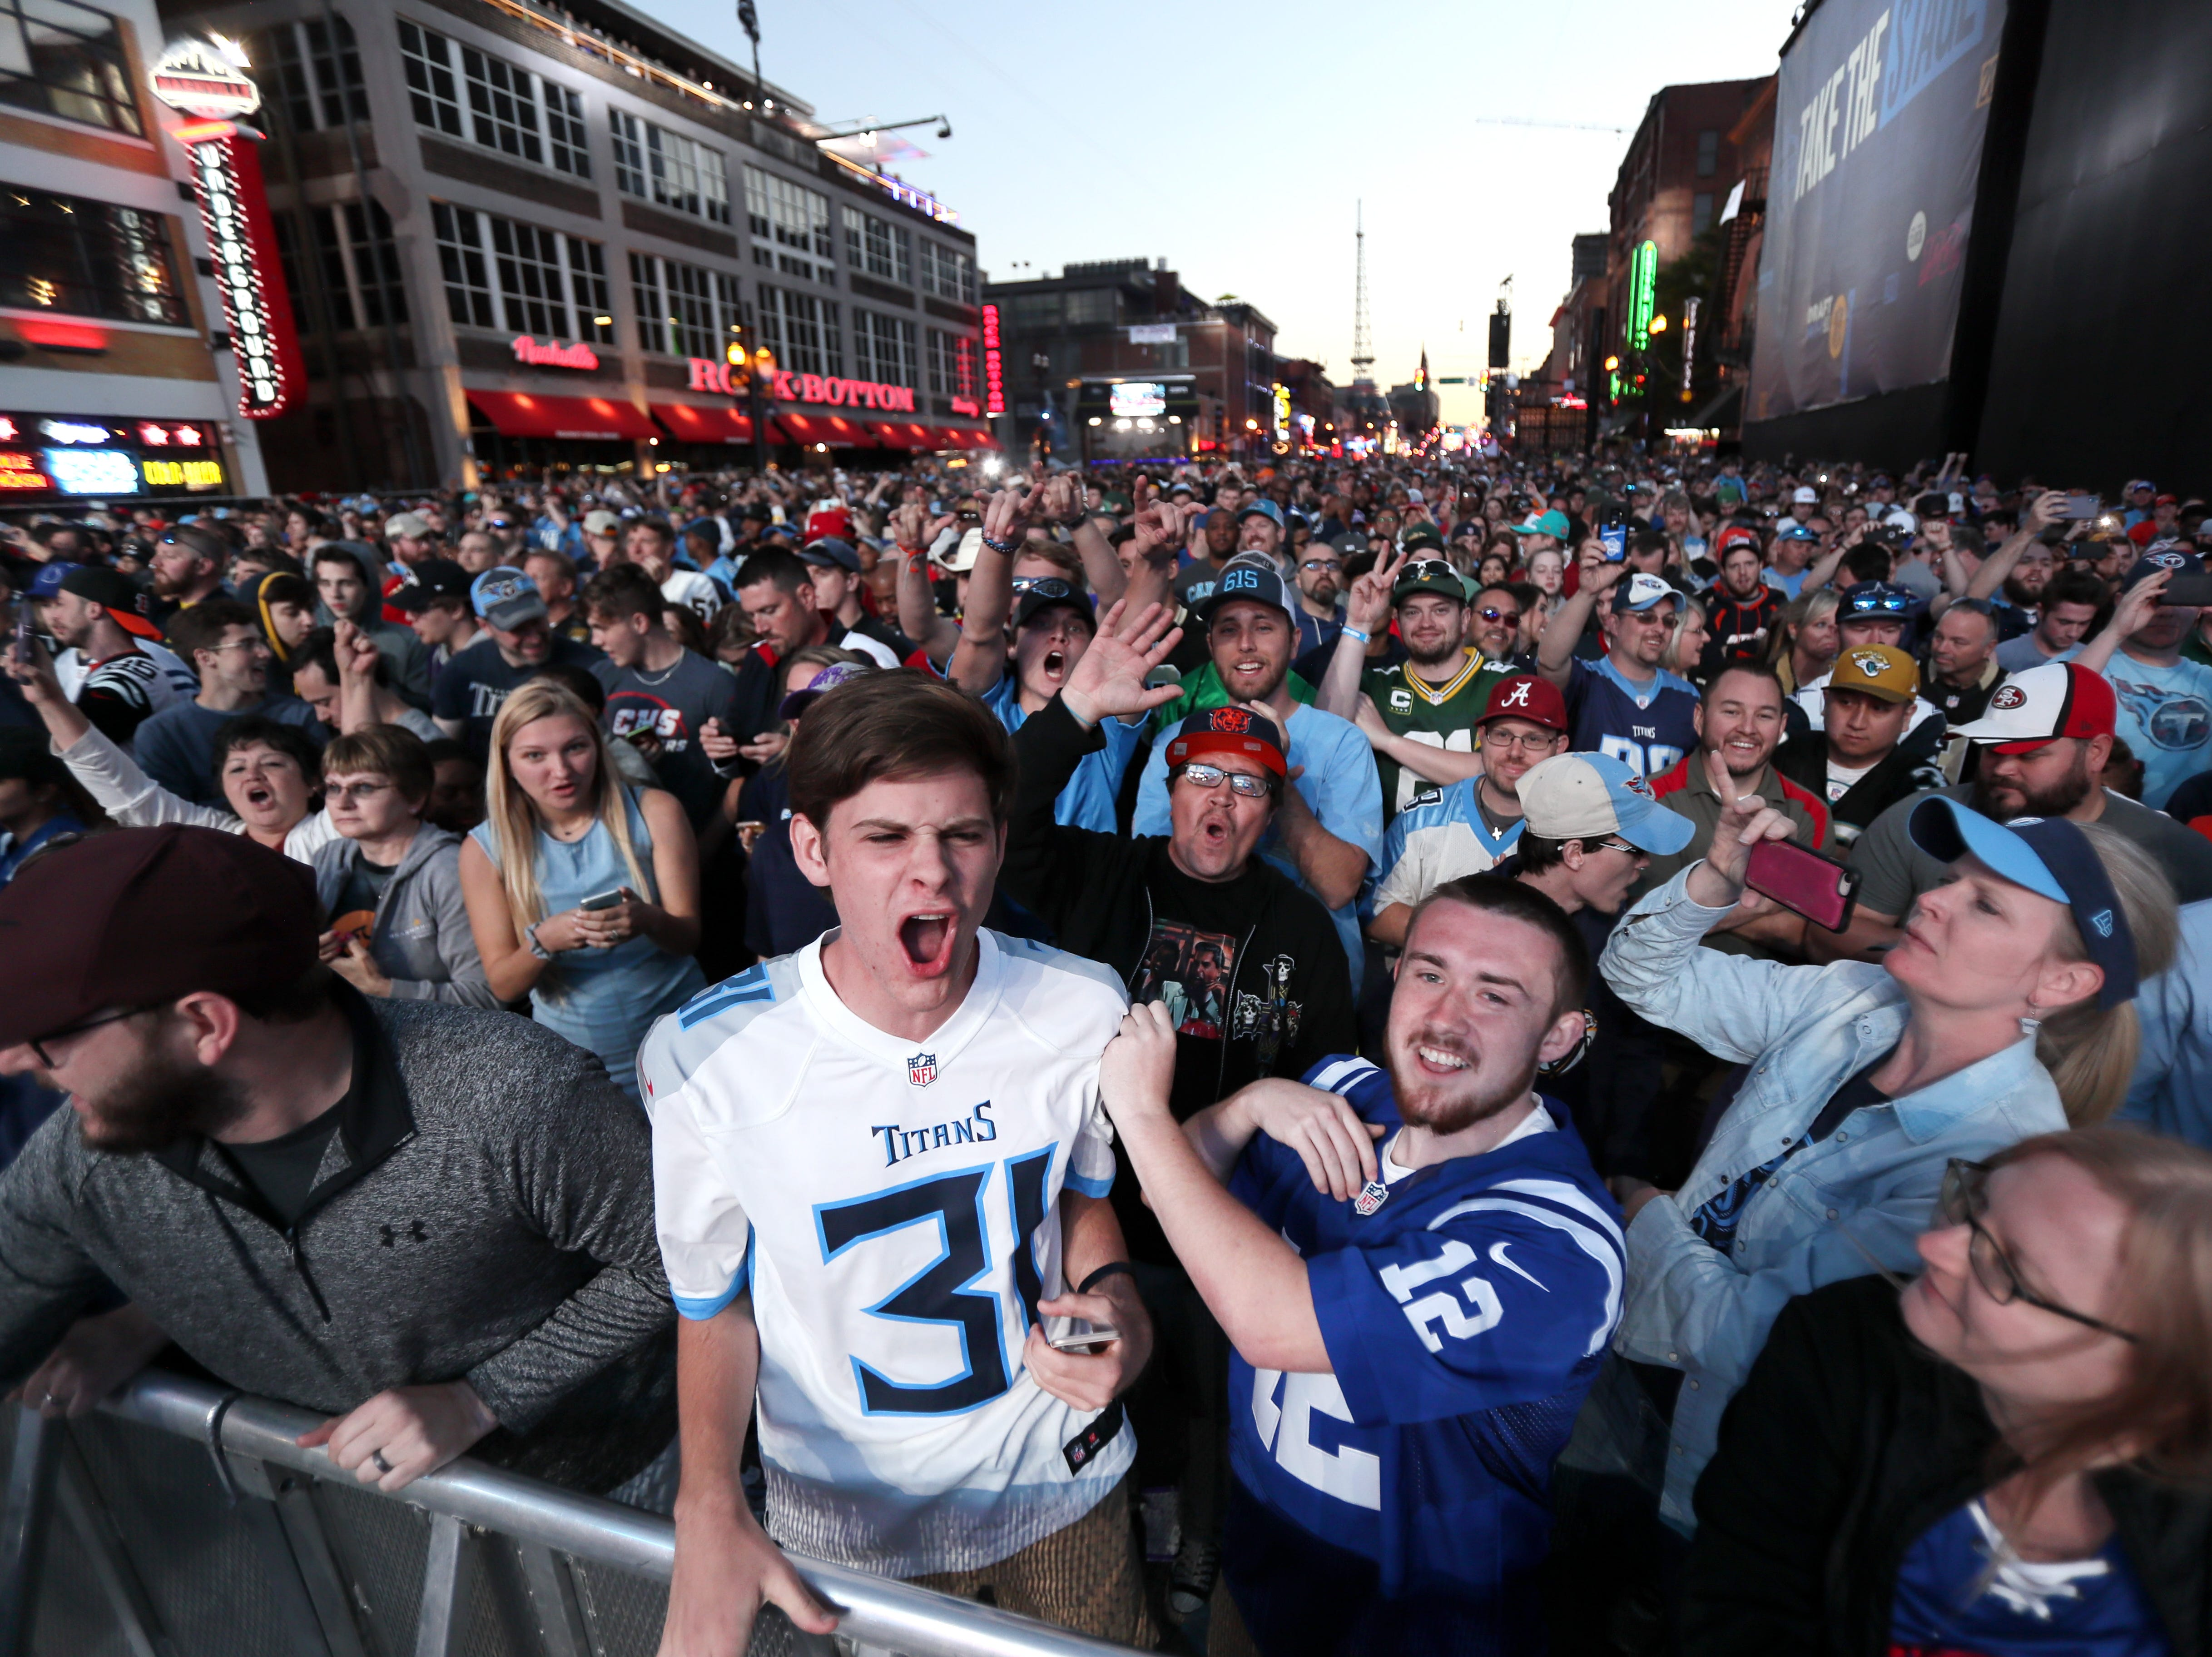 Colt Smith, center, celebrates the Titans second round selection of Ole Miss receiver A.J. Brown with his friend Nathan Bess during the NFL draft's second night on Lower Broadway in downtown Nashville on Friday, April 26, 2019.